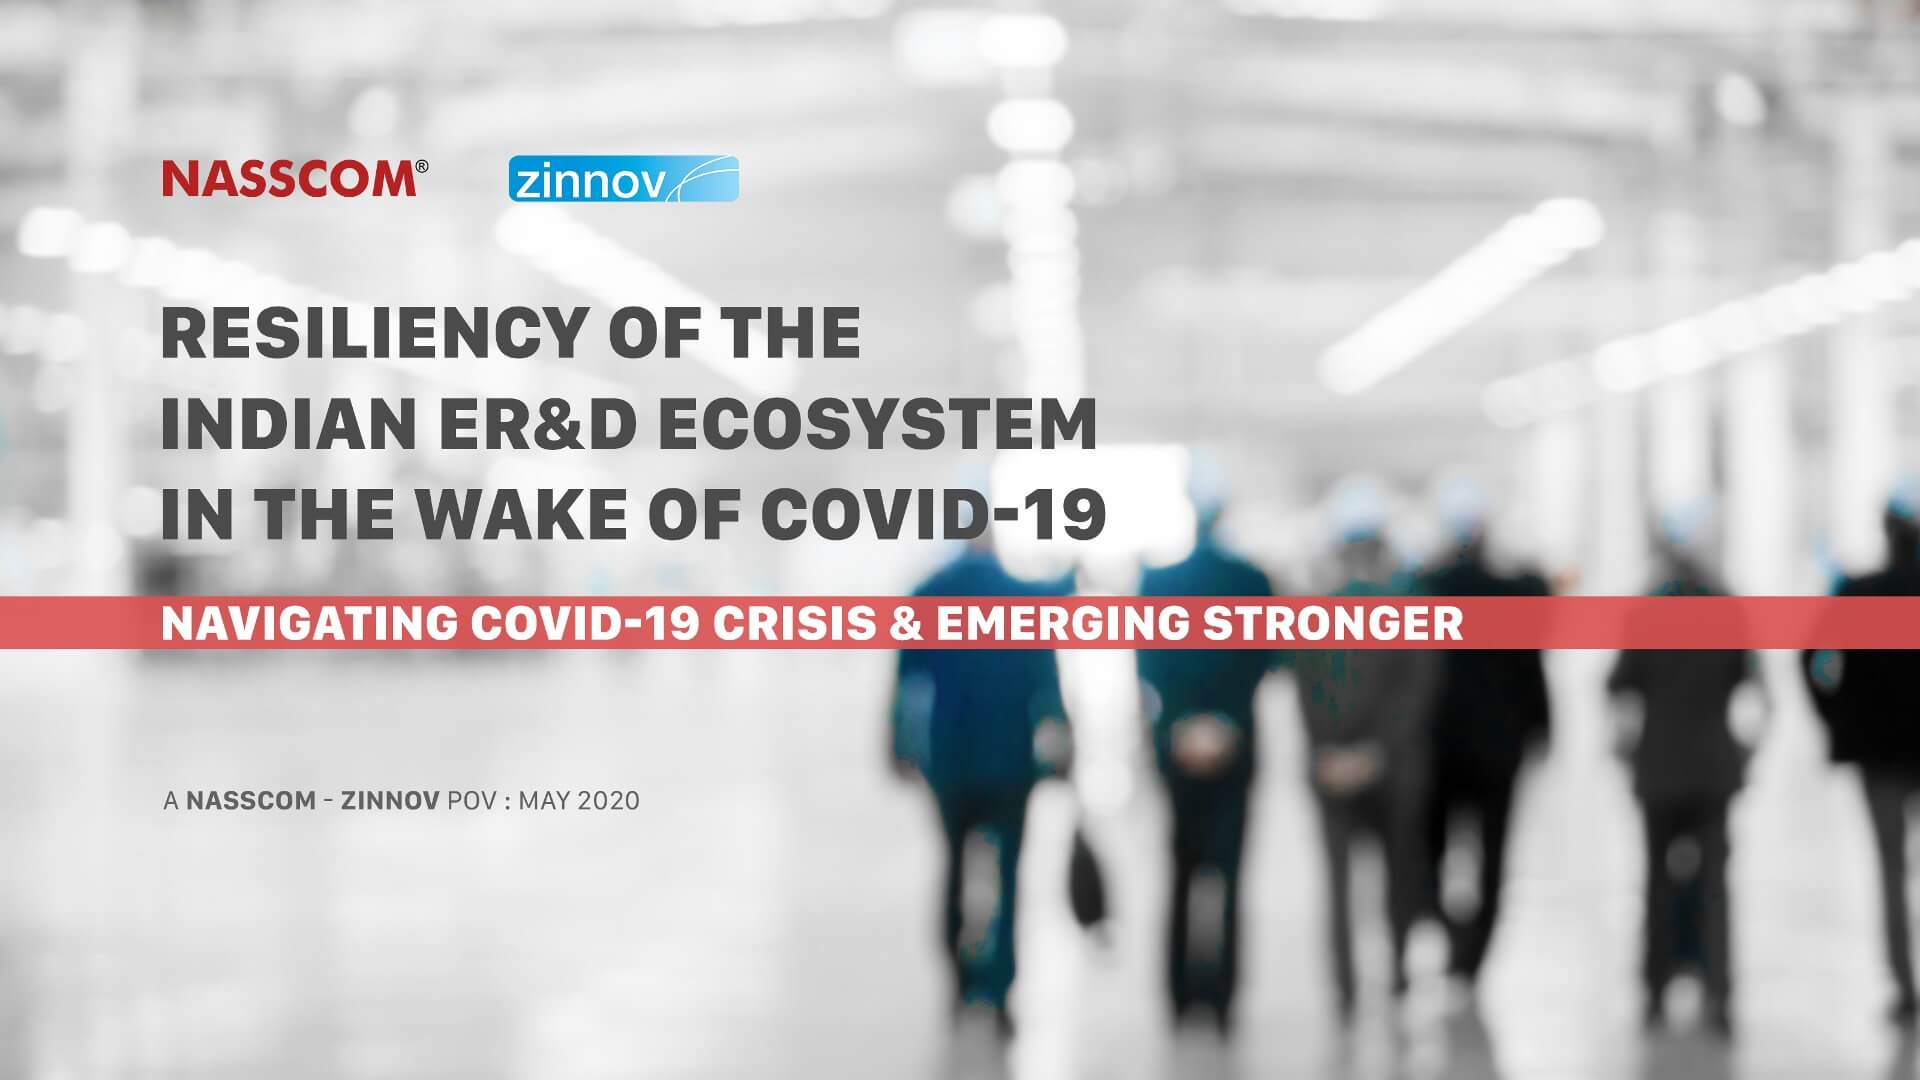 Resiliency Of The Indian ER&D Ecosystem In The Wake Of COVID-19